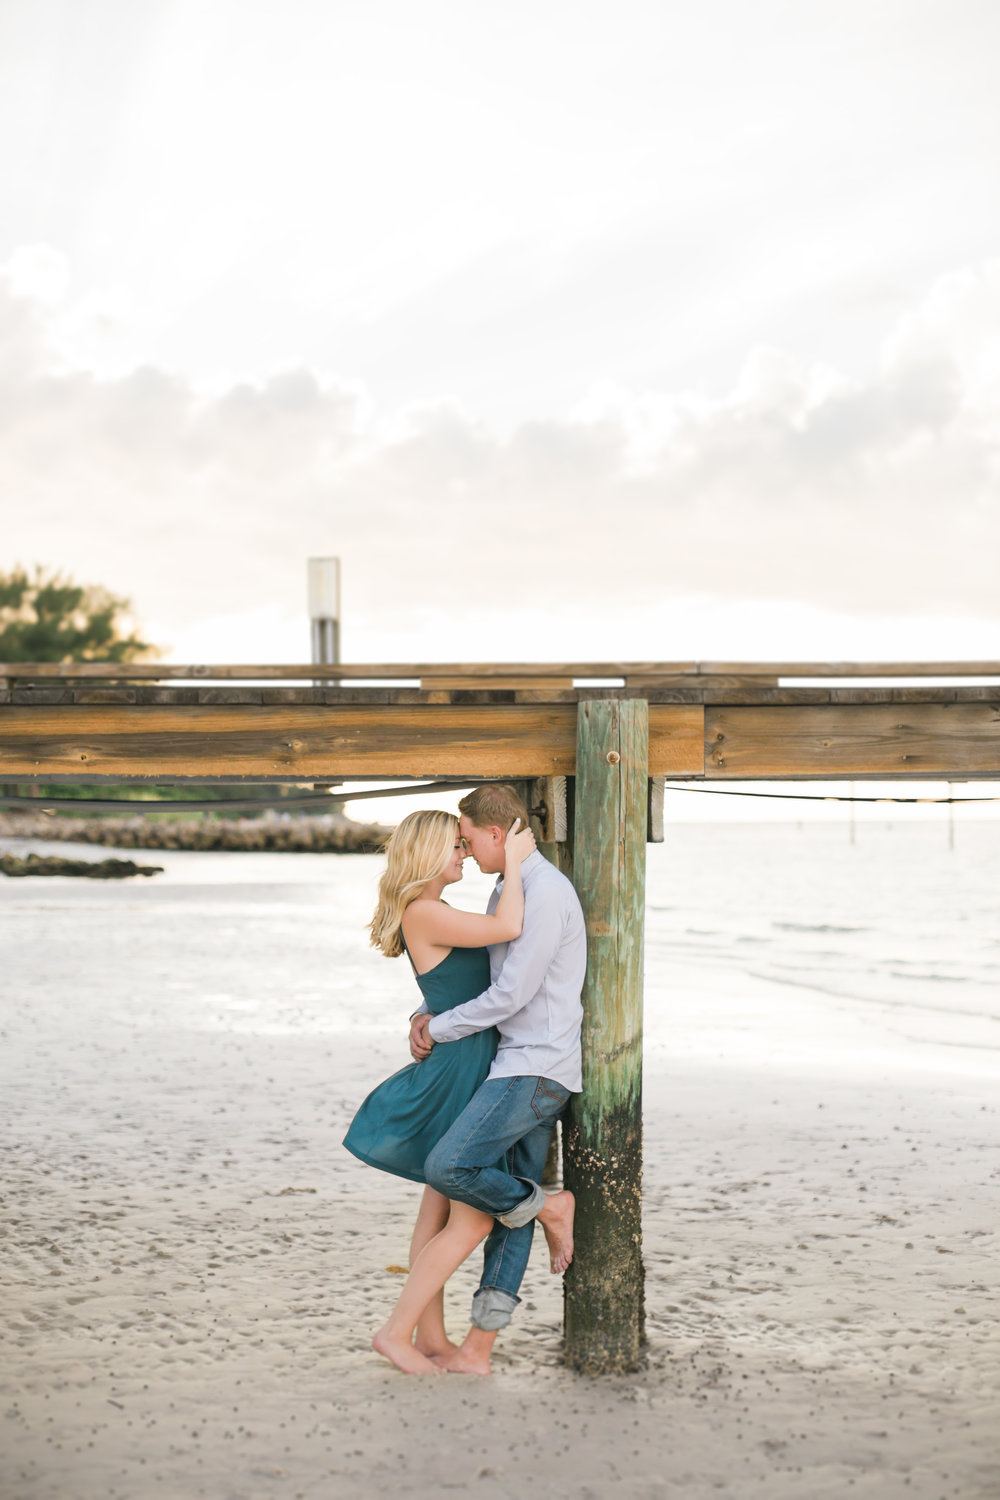 Madeline + Clay + Anna Maria Island Engagement Photographer - Preview Photos - Emily & Co. Photography (24).jpg